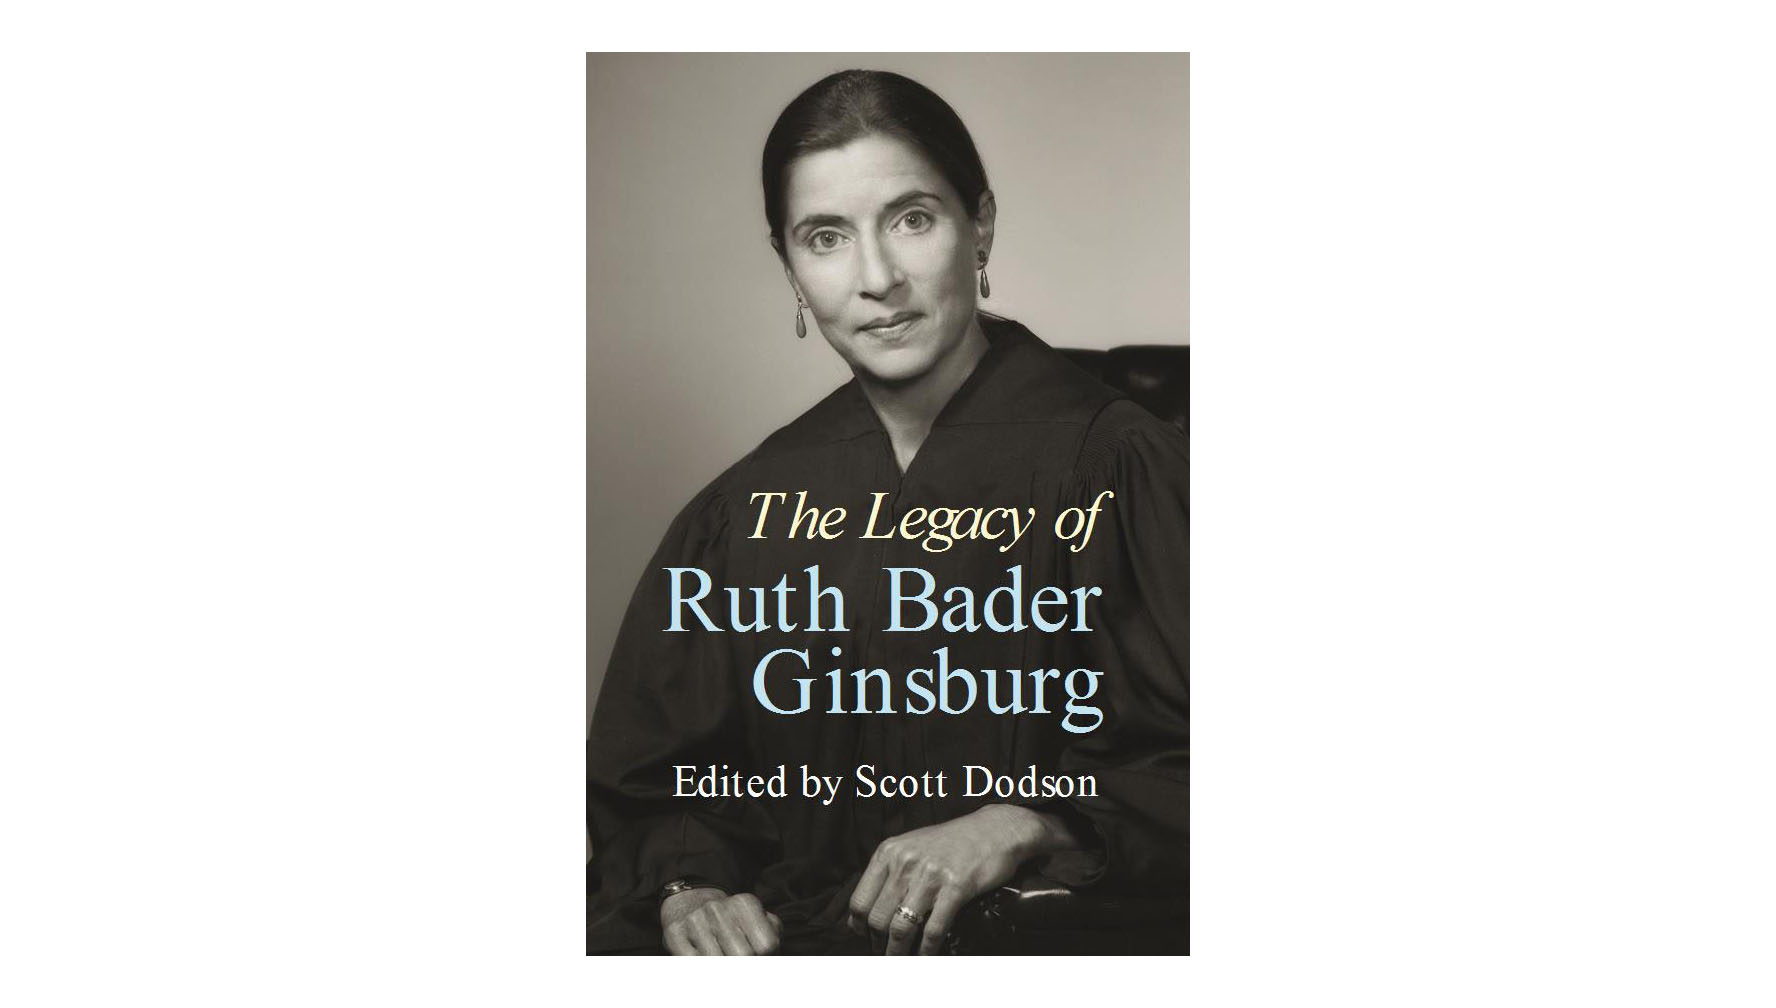 The Legacy of Ruth Bader Ginsburg, by Scott Dodson